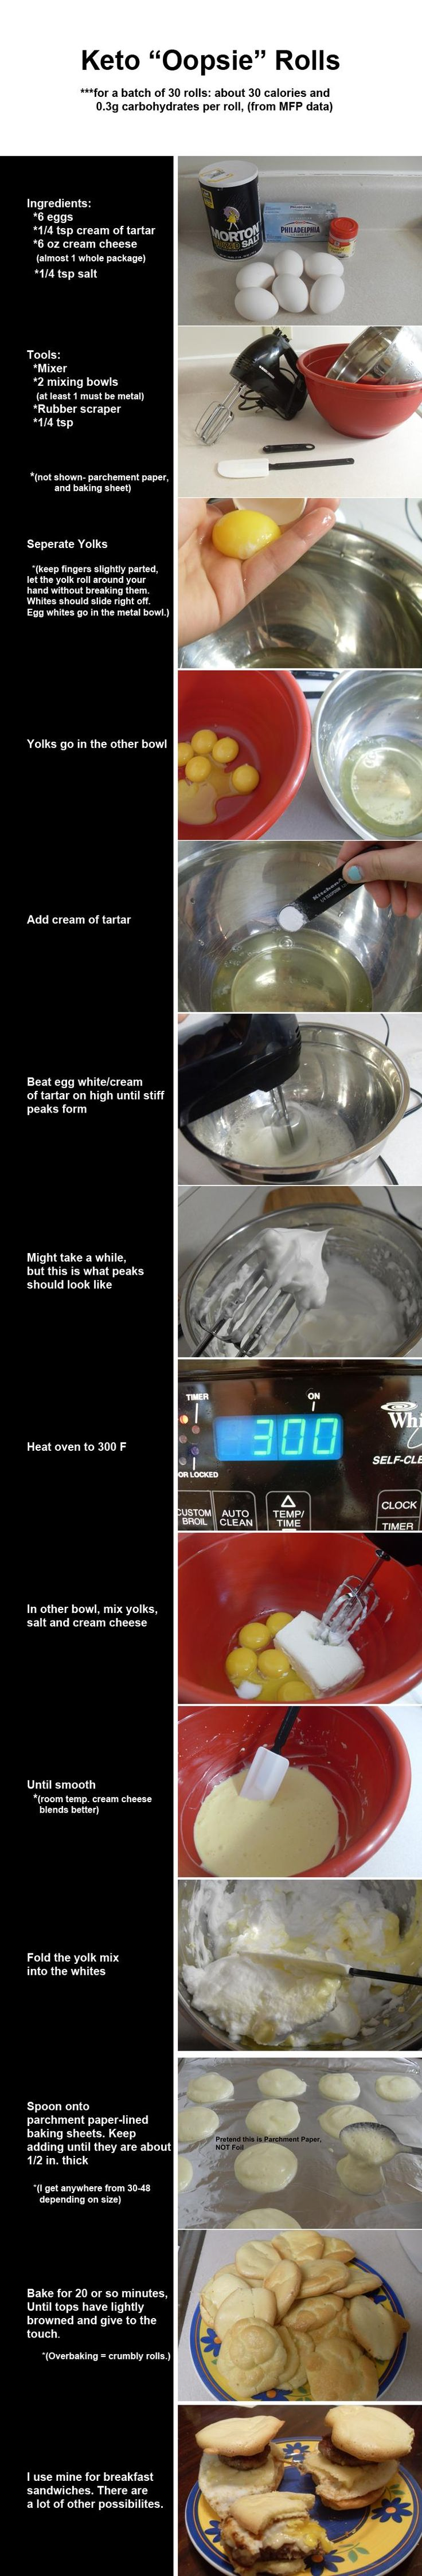 """What every Keto-er needs to try at least once. """"Oopsie Rolls!"""" My first attempt at a step-by-step guide. - Imgur"""